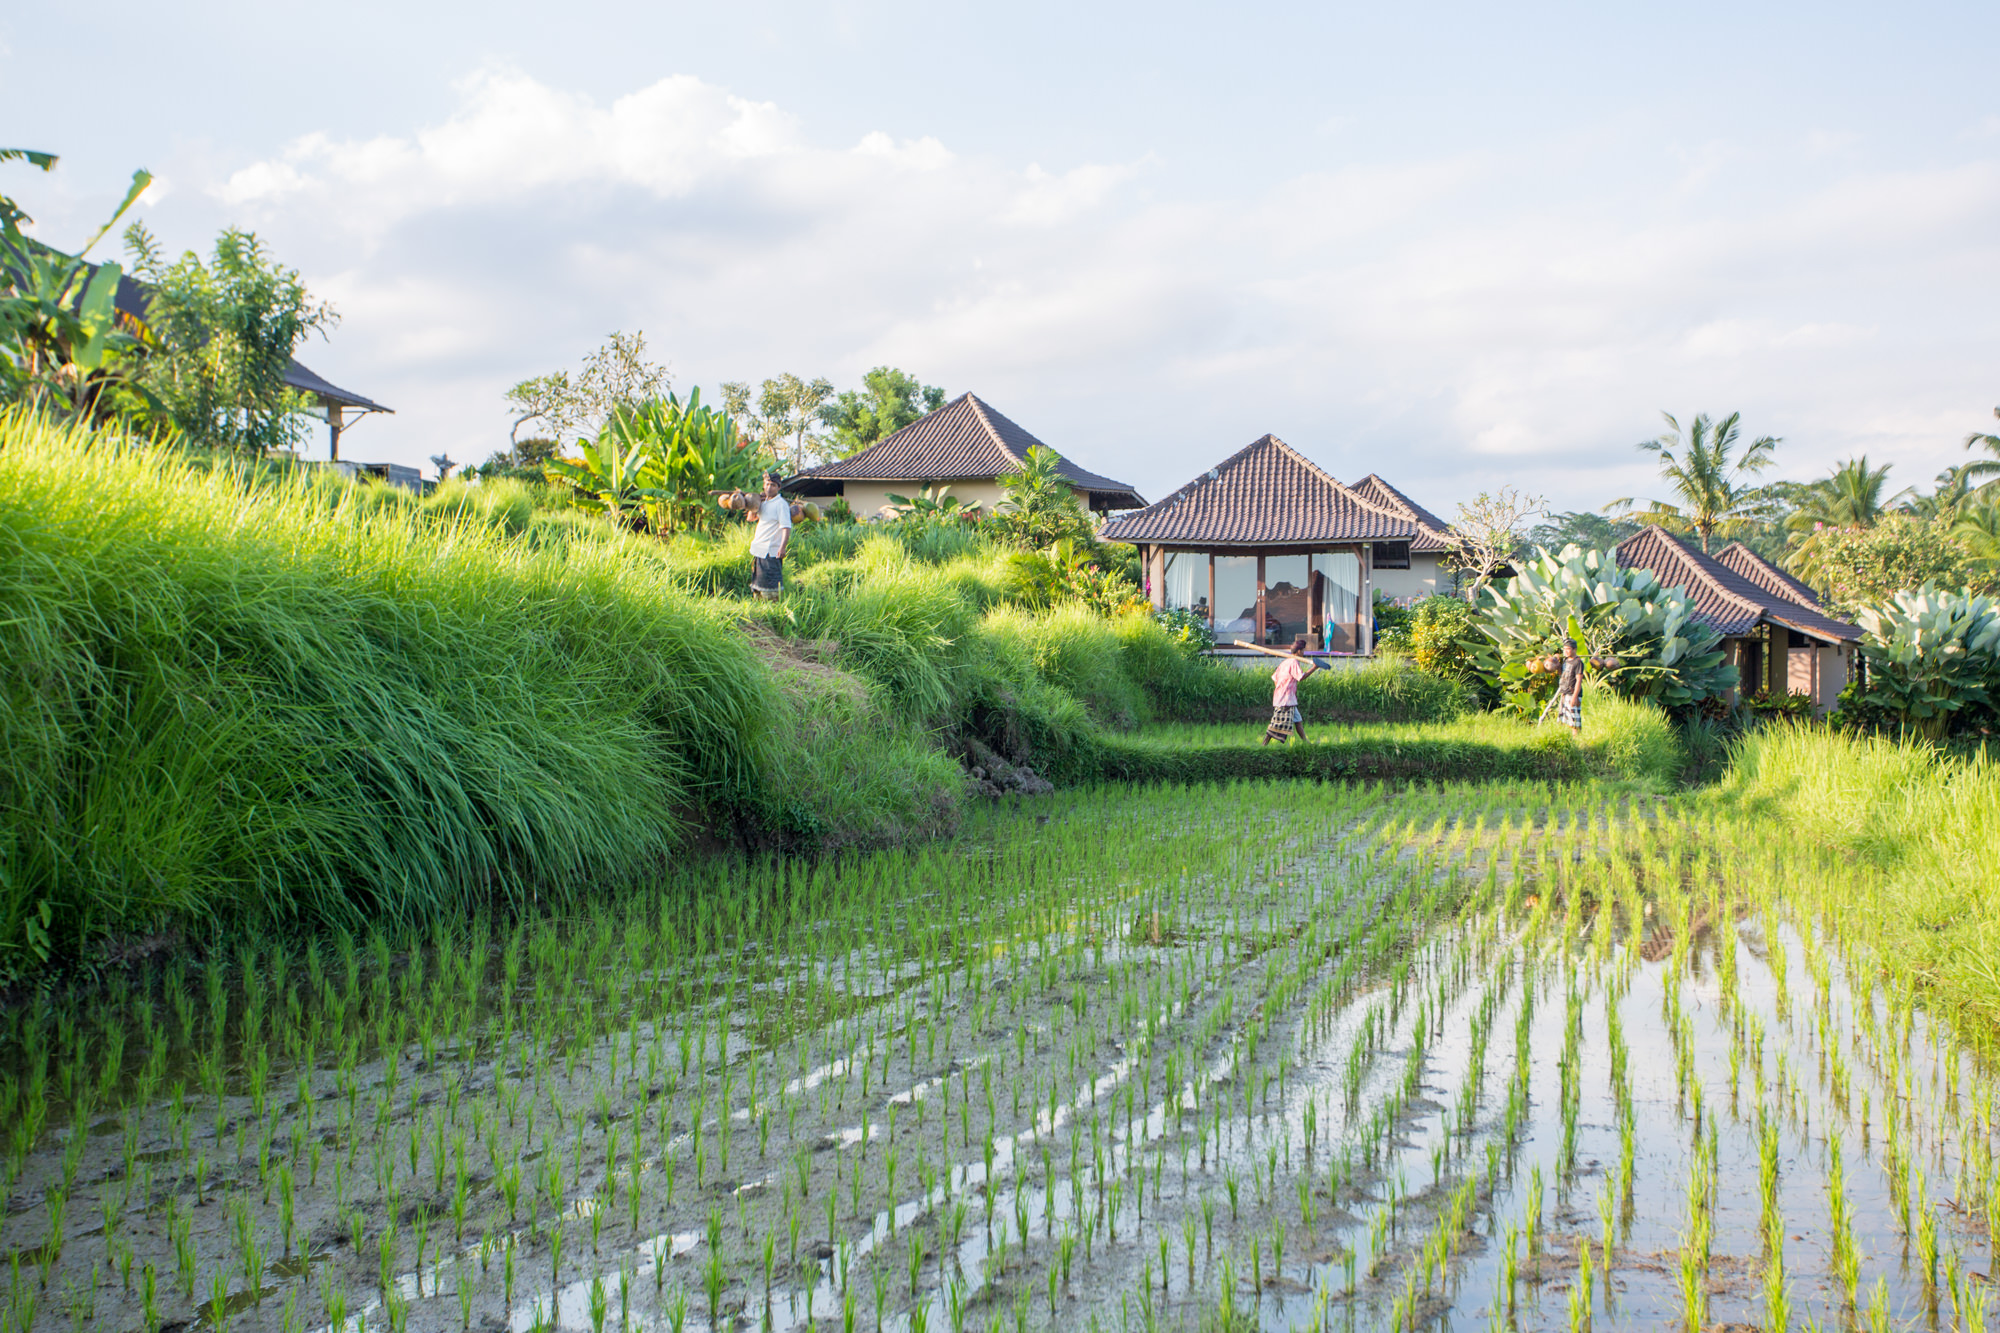 Surrounding Rice-Fields.jpg